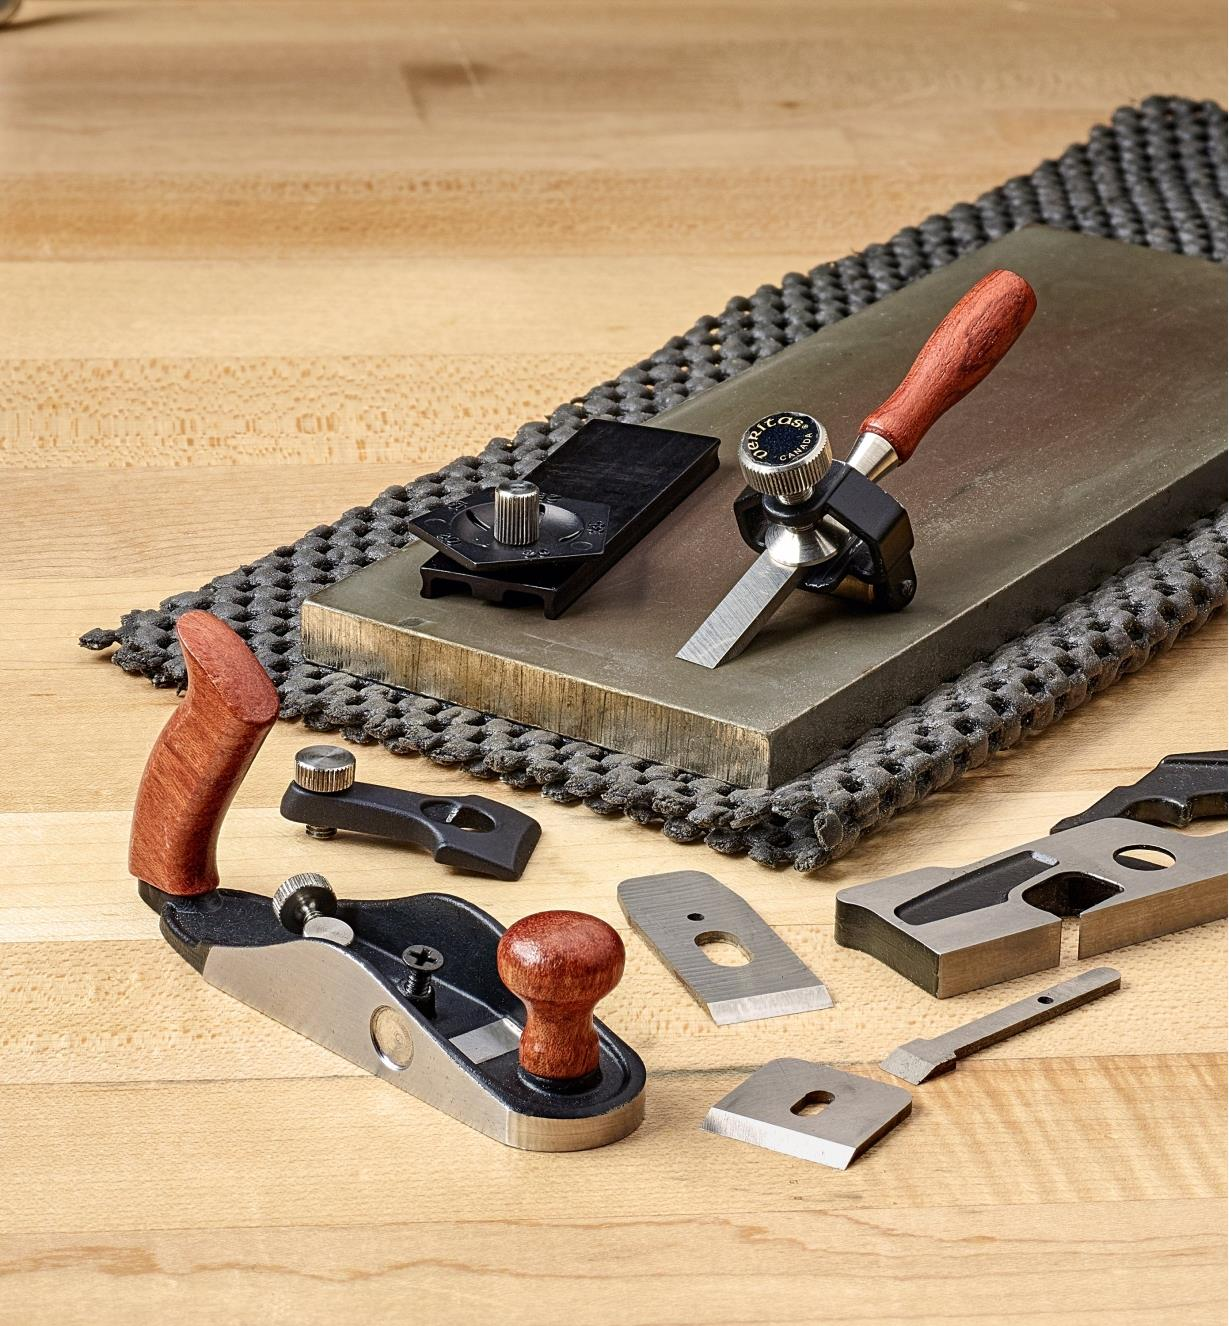 A chisel blade held in the miniature honing guide sits beside the angle jig on a sharpening stone with other small blades nearby